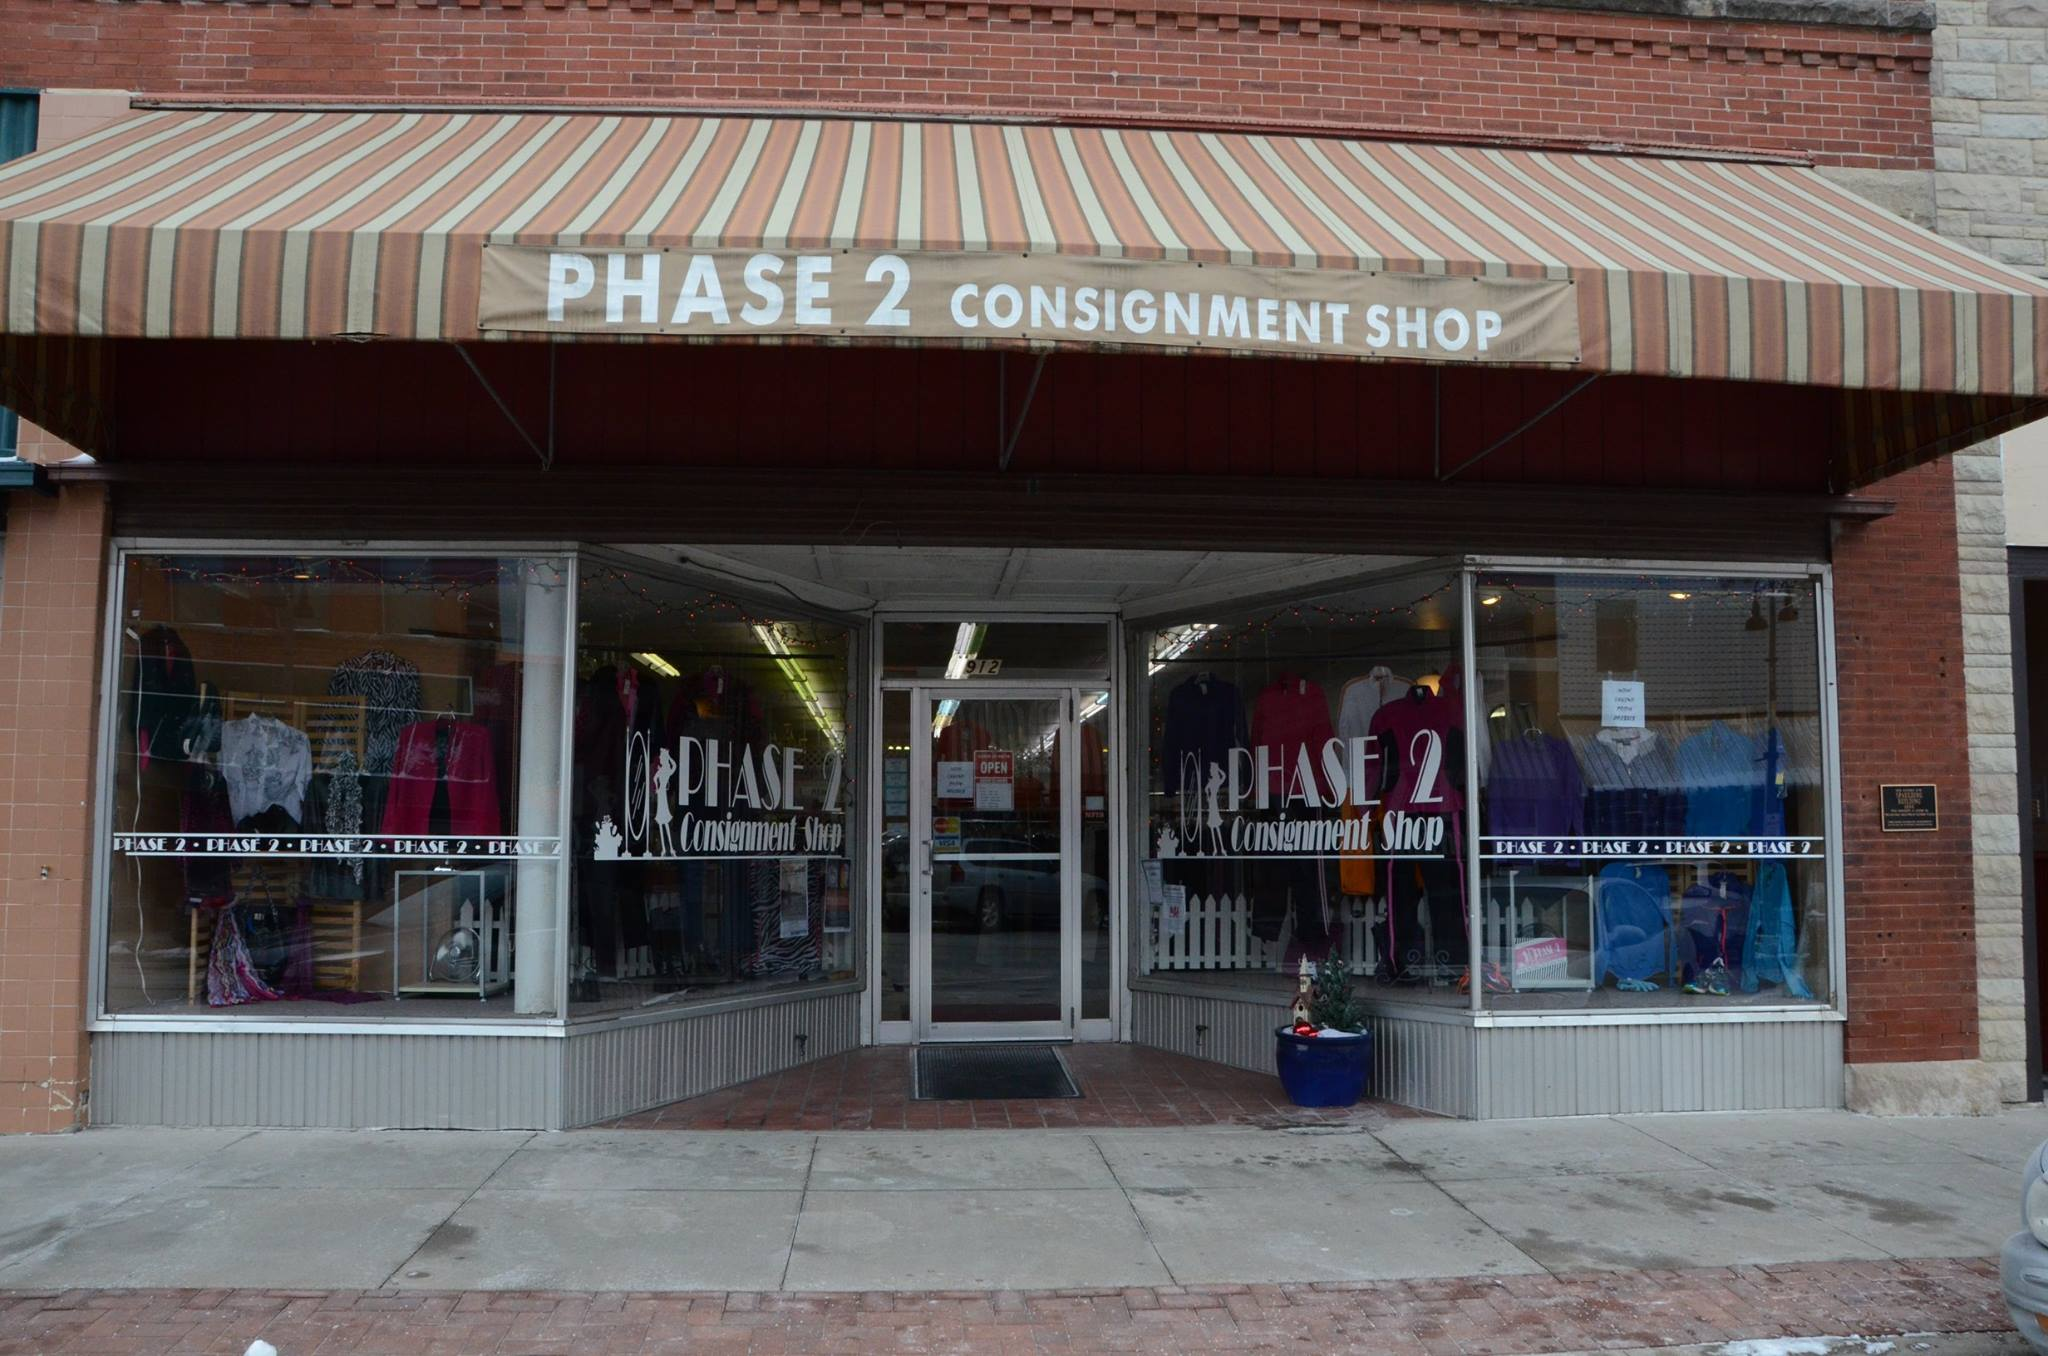 Phase 2 Consignment